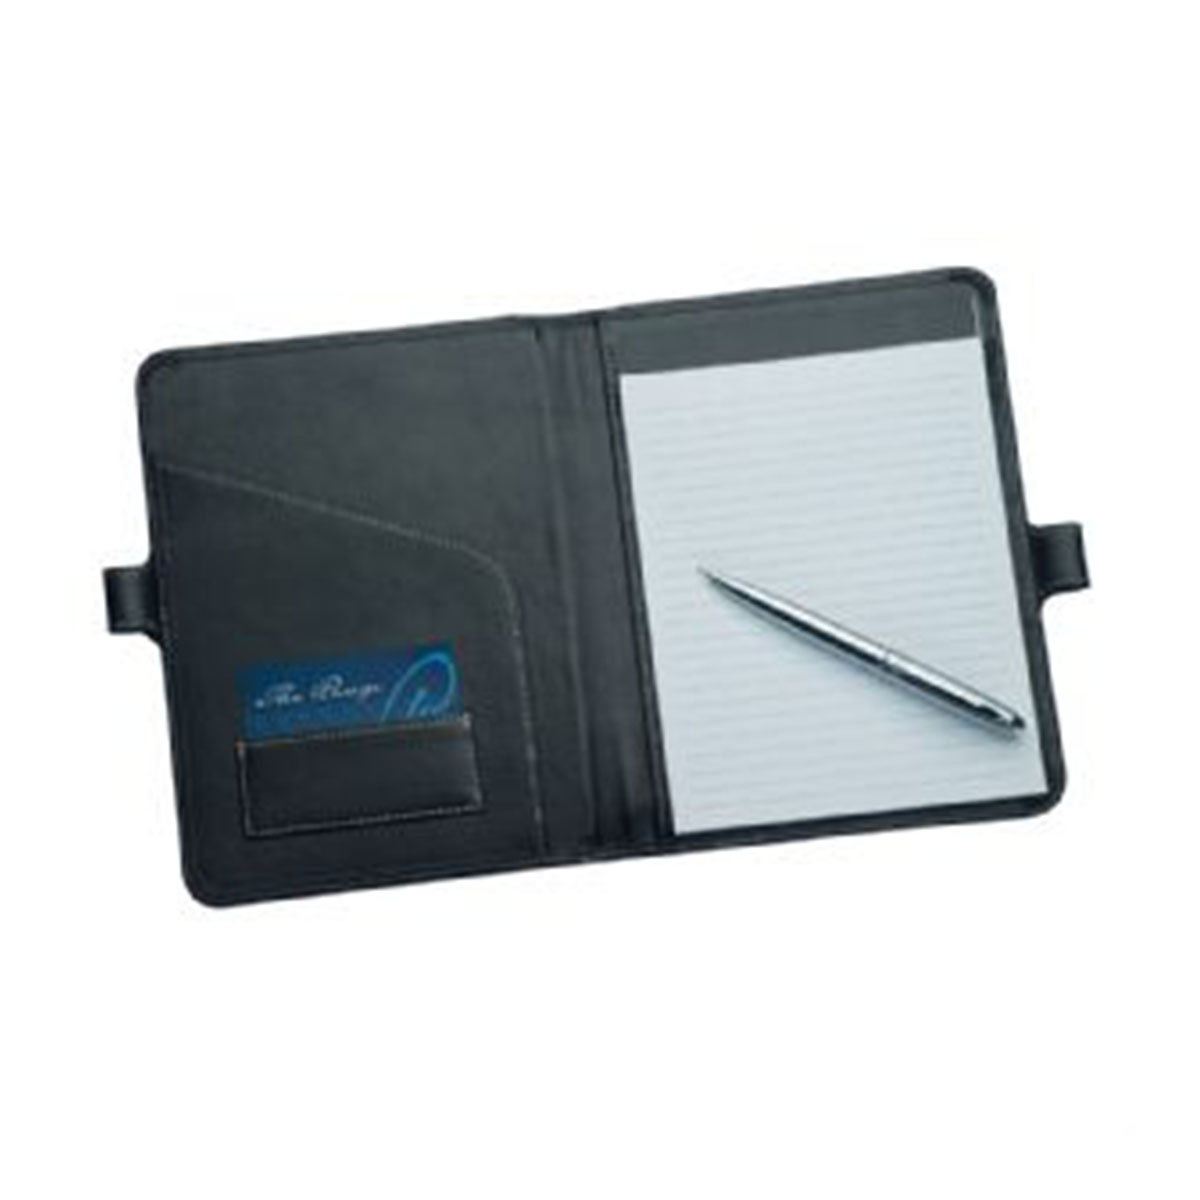 A5 Leather Pad Cover with Pen Closure-Black.